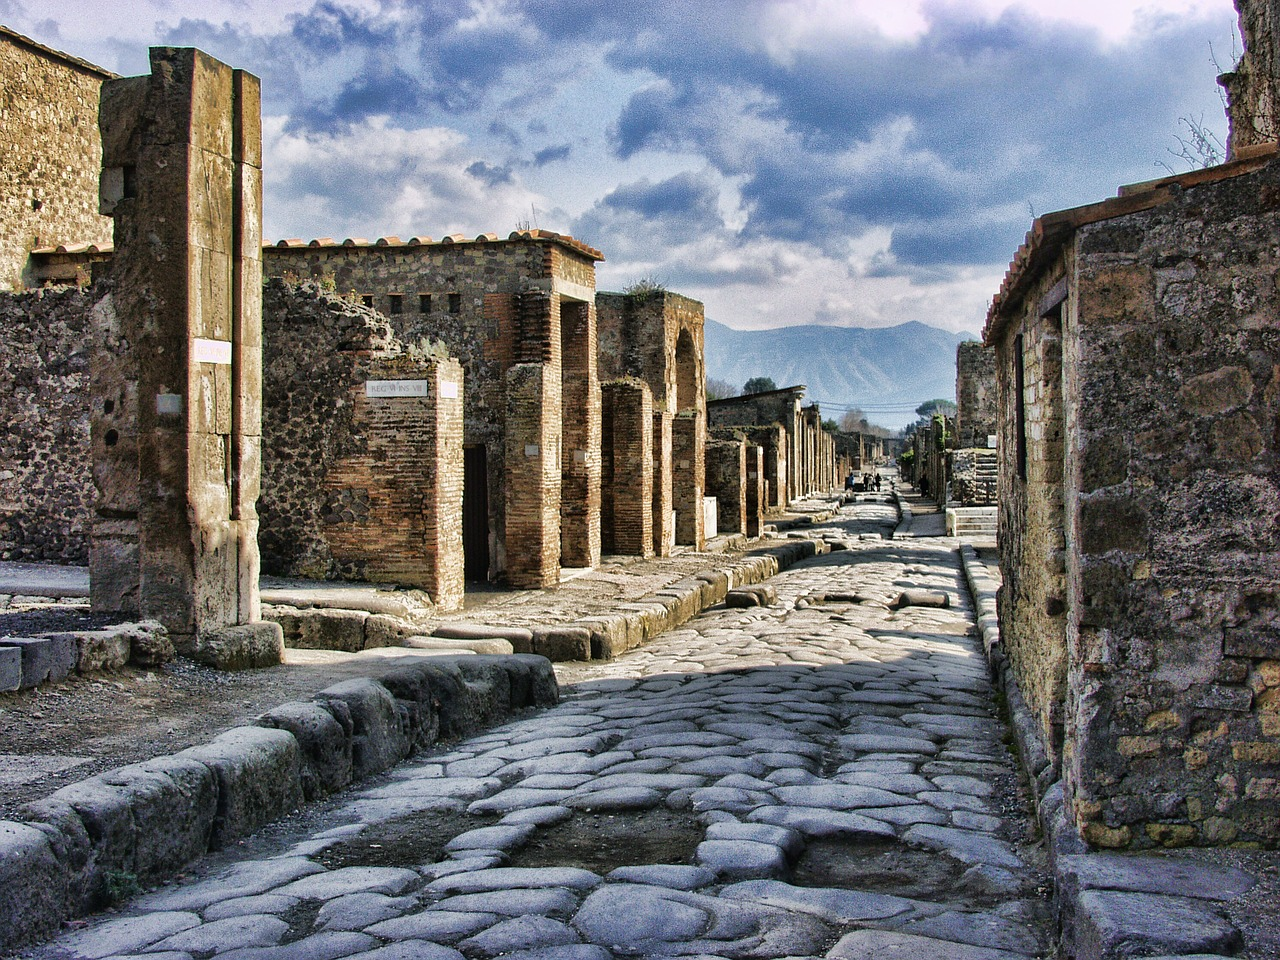 Pompeii city streets, which were destroyed in 79AD. Part of I Survived the Destruction of Pompeii 79AD website summary